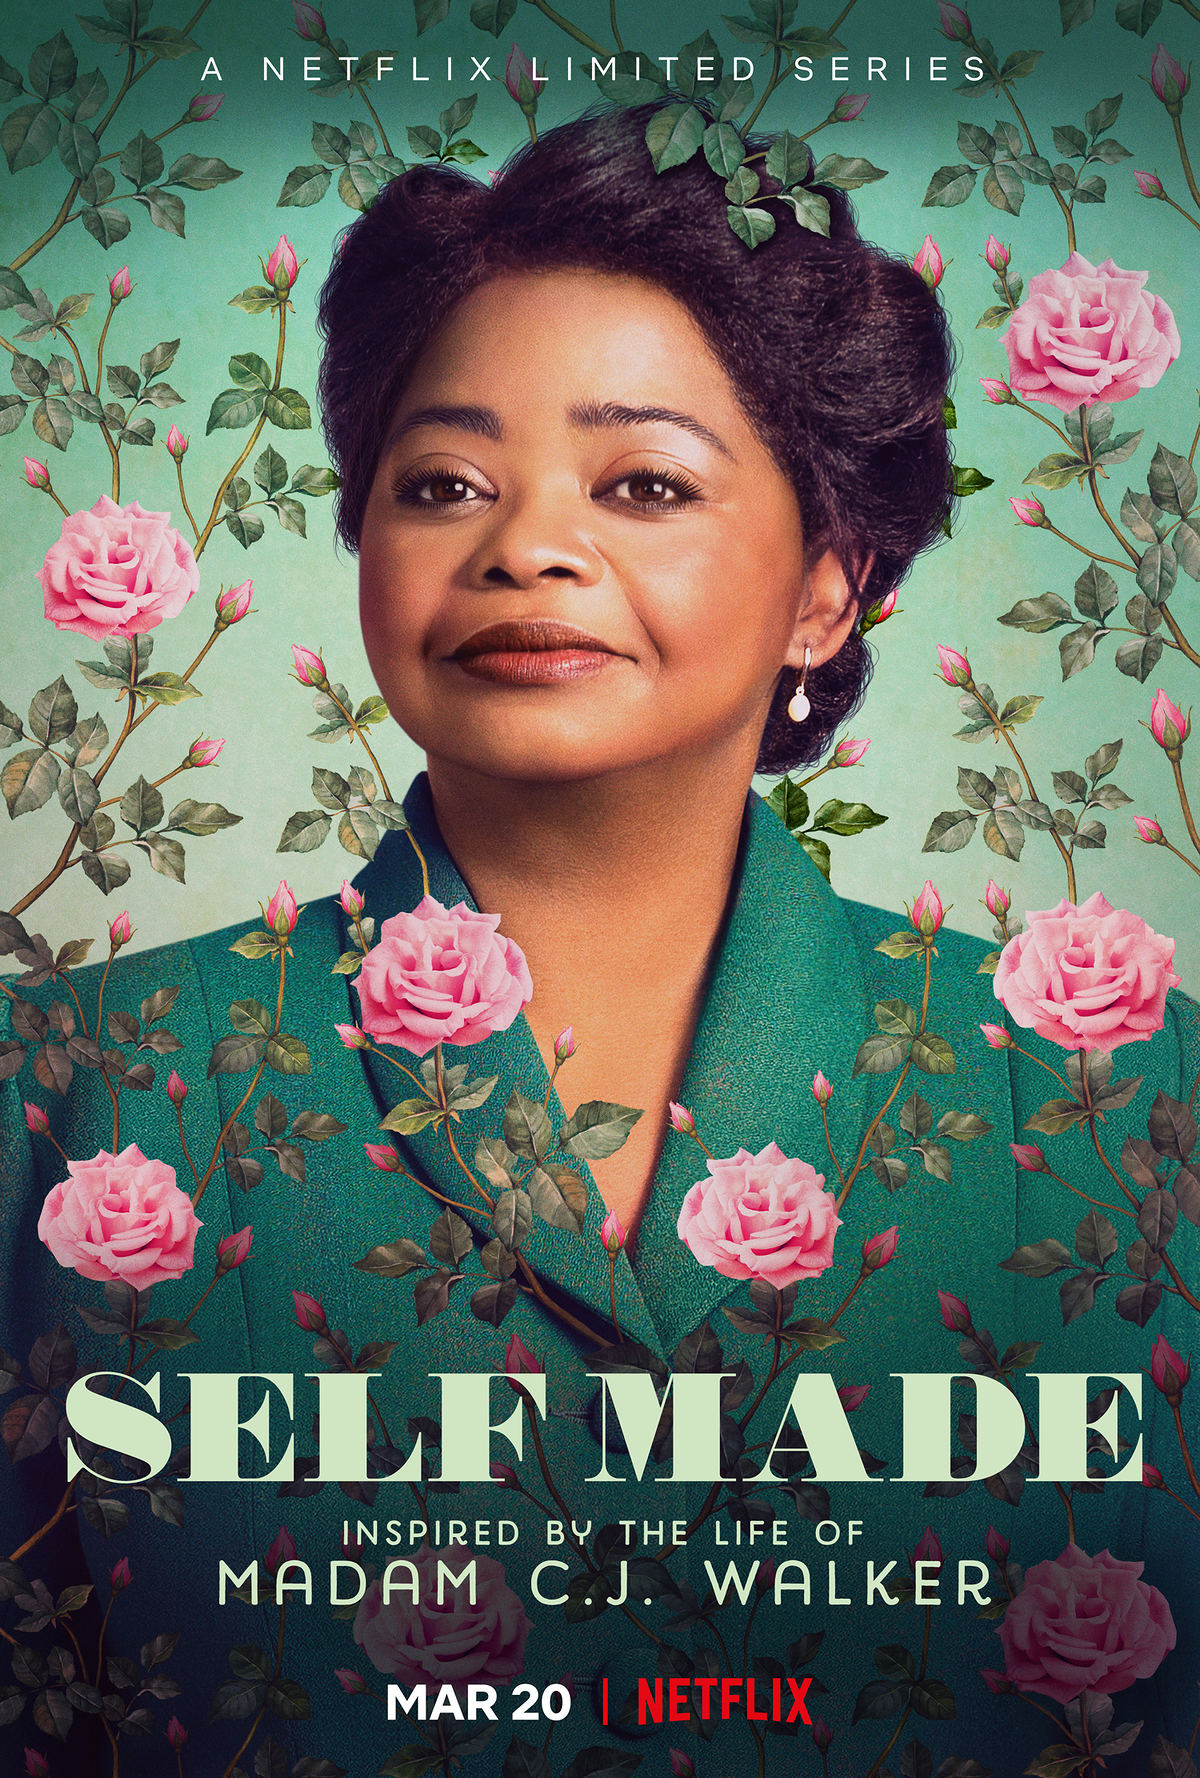 Images from the Netflix Miniseries Self Made